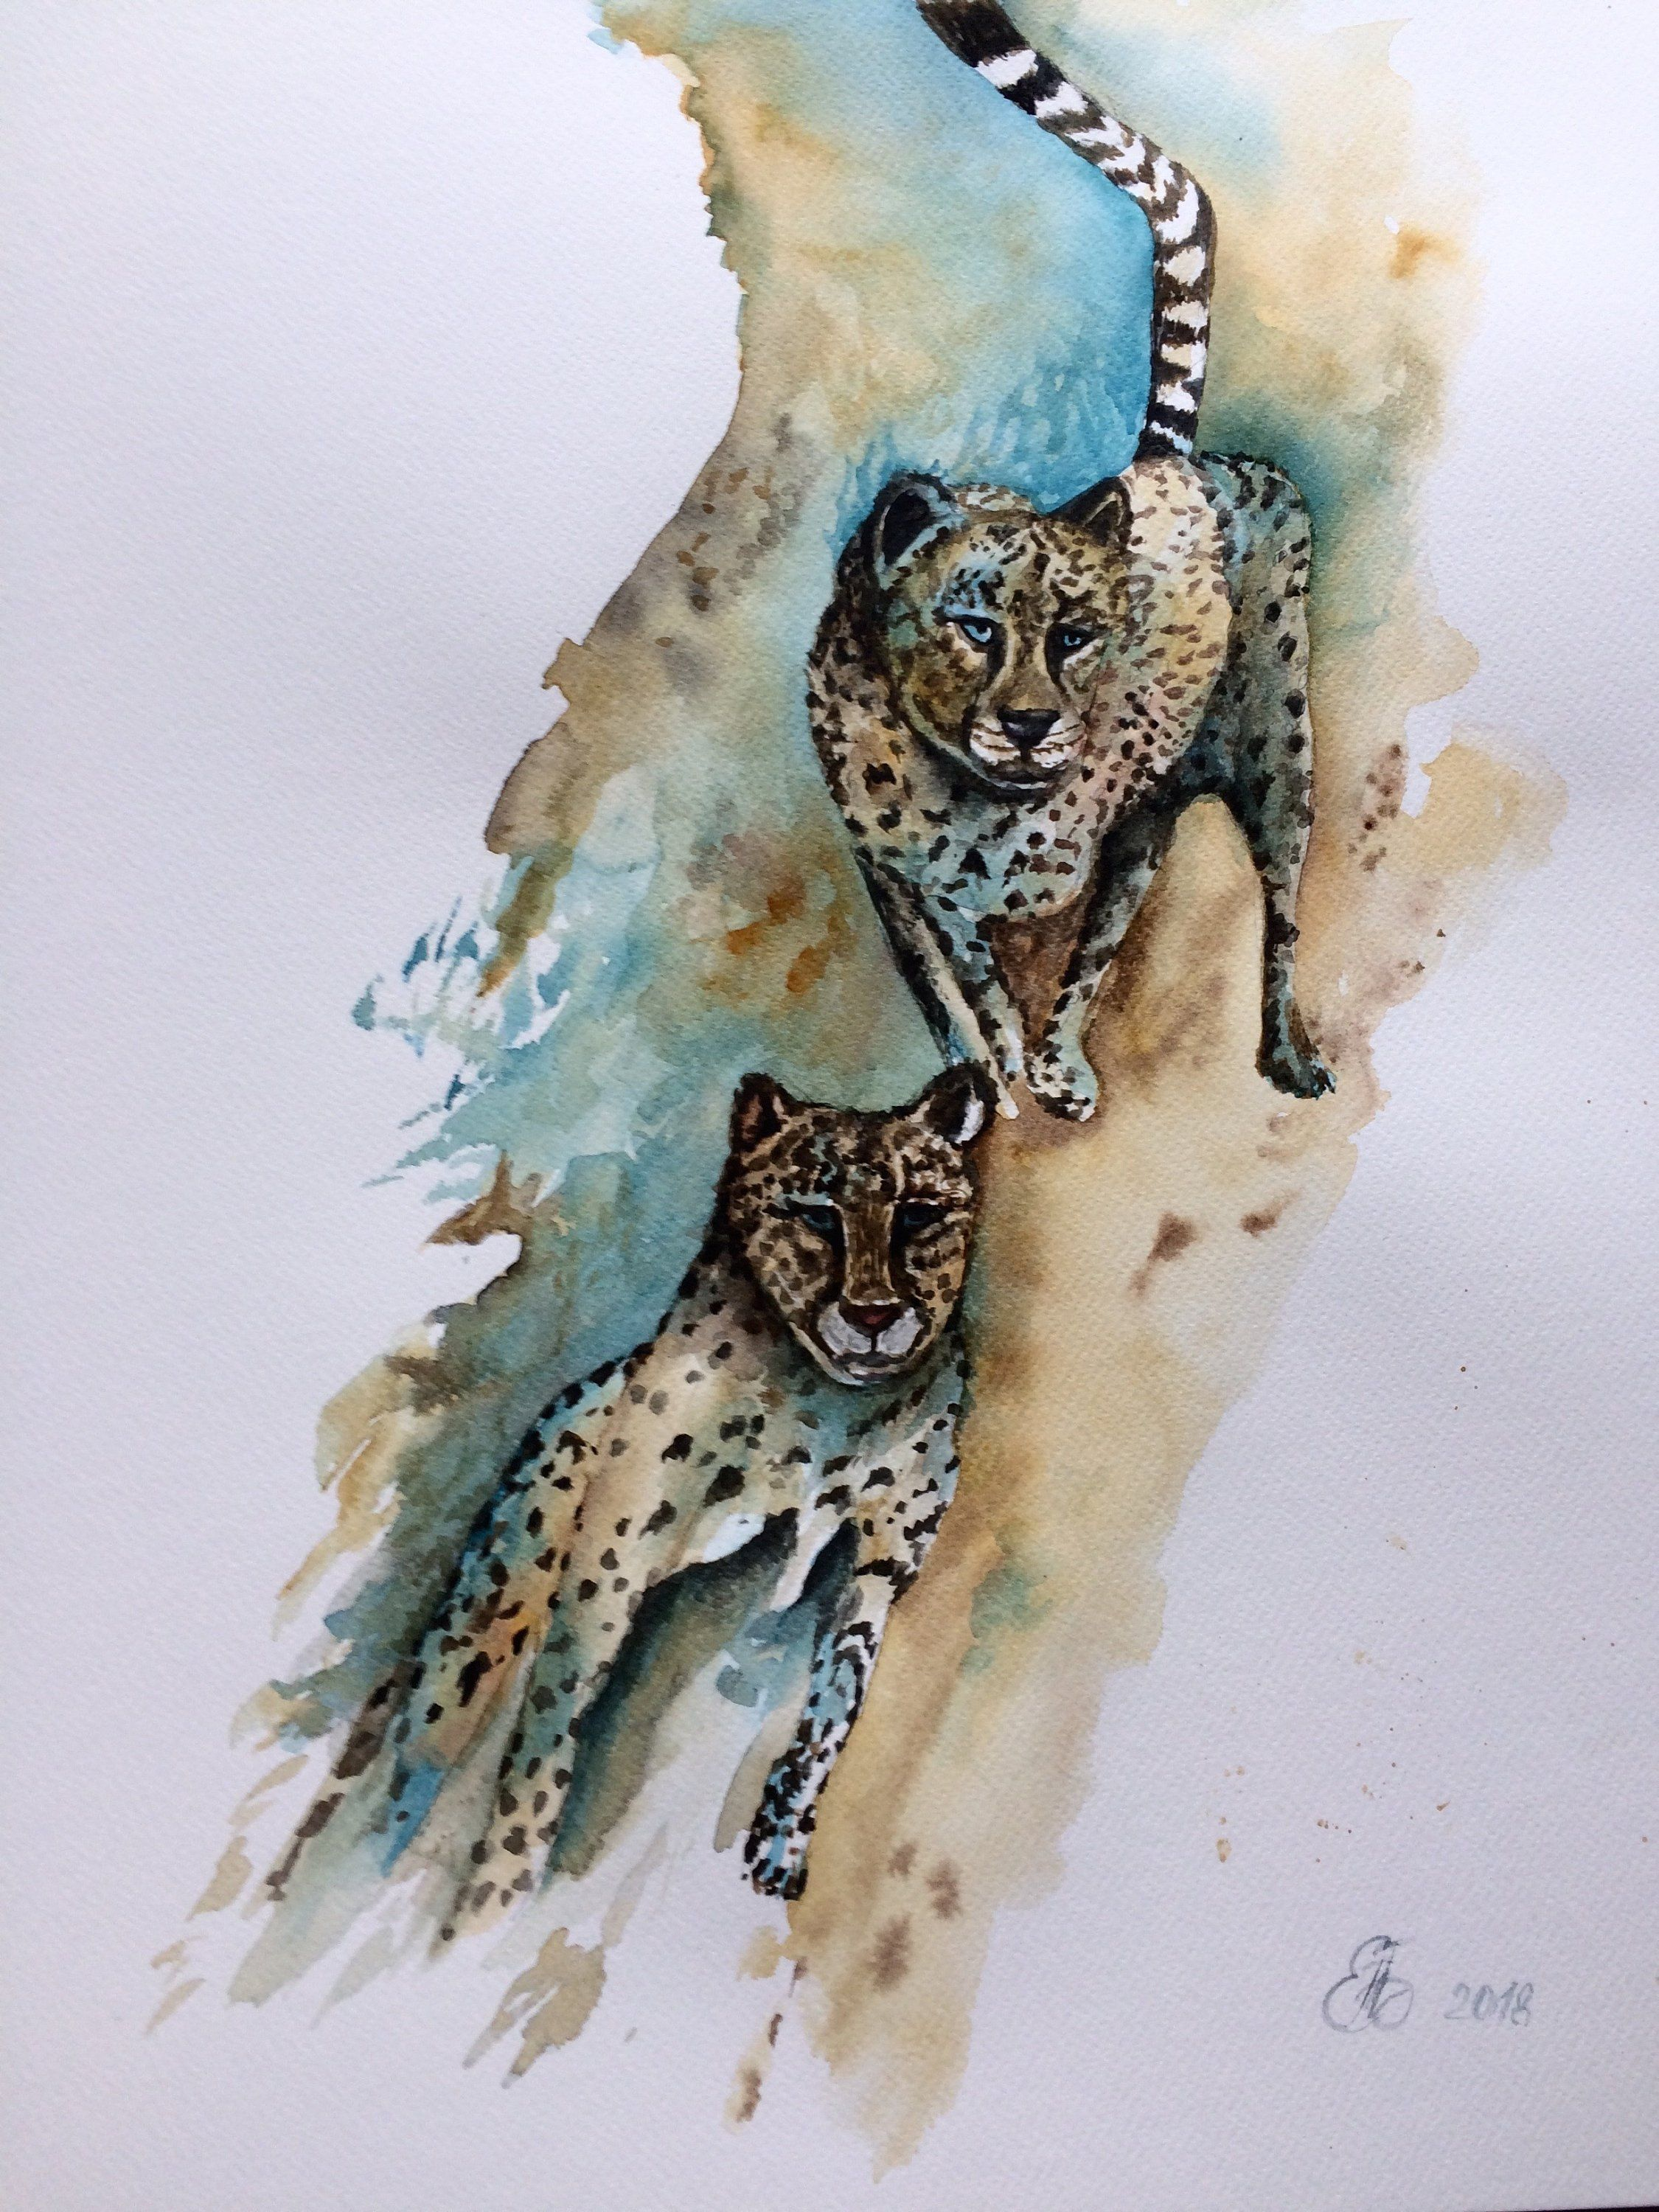 Original Aquarellbild Watercolor Painting Tiere Malen Tierwelt